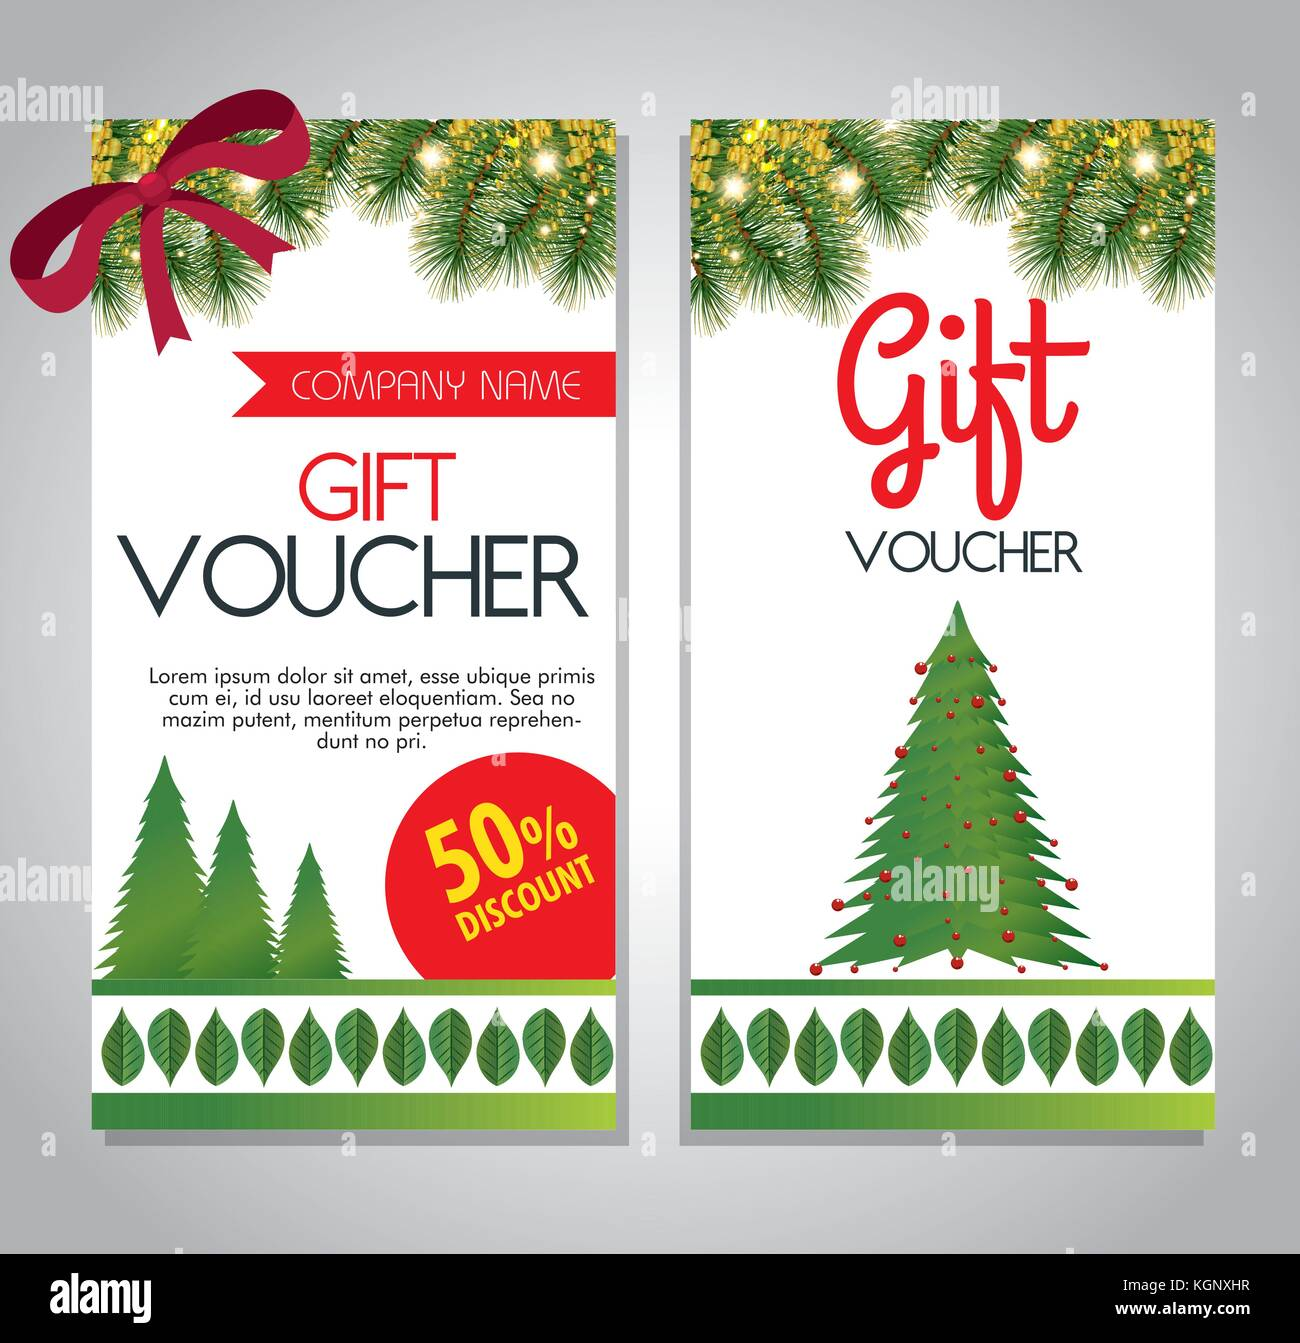 Christmas Gift Voucher Gift Card Vector Illustration Graphic Design Stock Vector Image Art Alamy